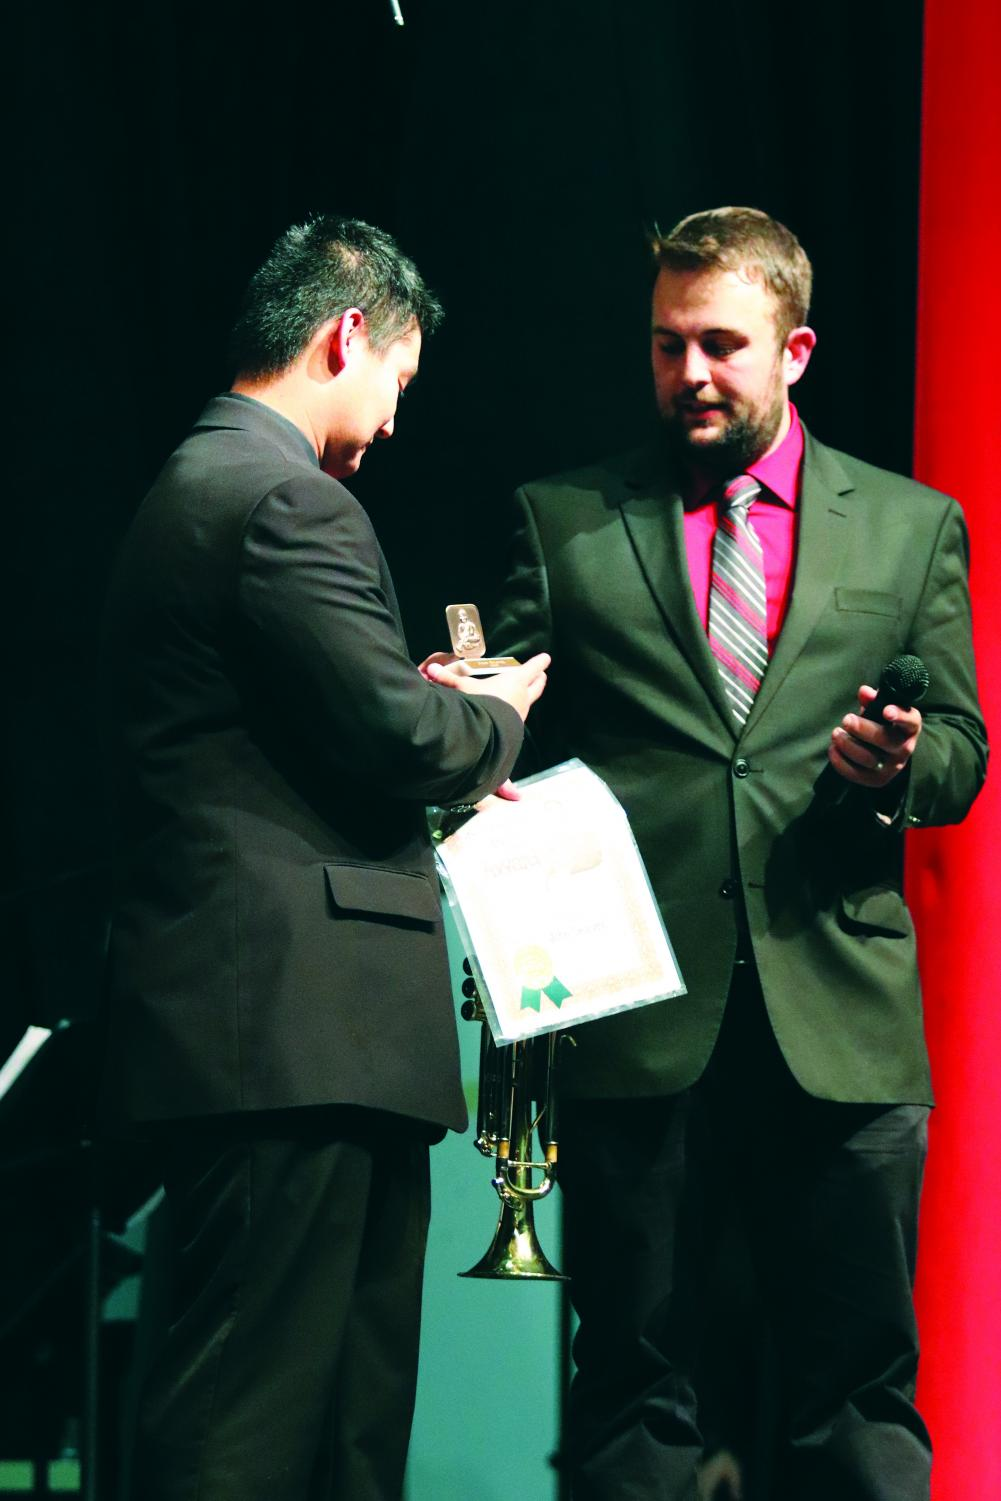 Band director Logan Doddridge hands John Seaver his Louis Armstrong Award